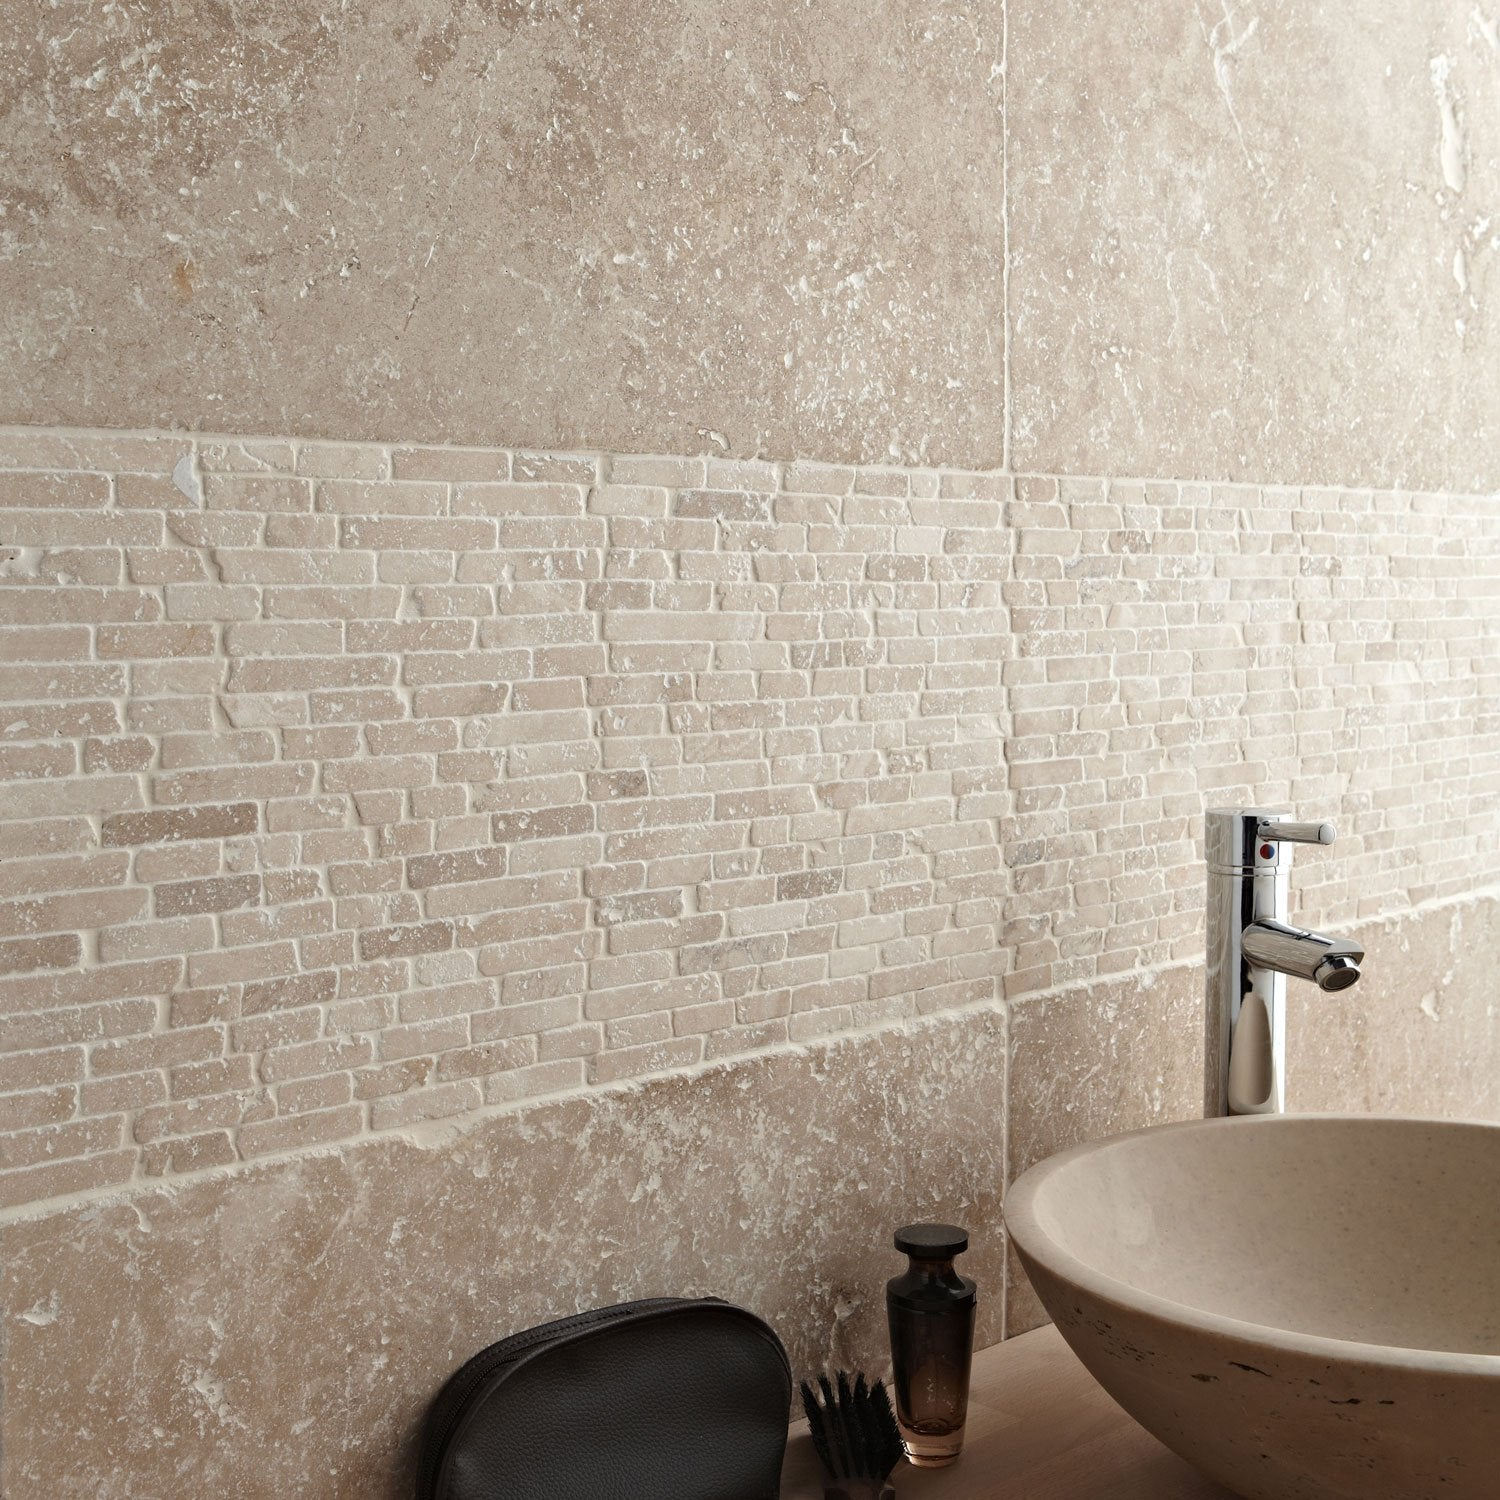 Travertin sol et mur beige effet pierre travertin x for Joint carrelage salle de bain leroy merlin